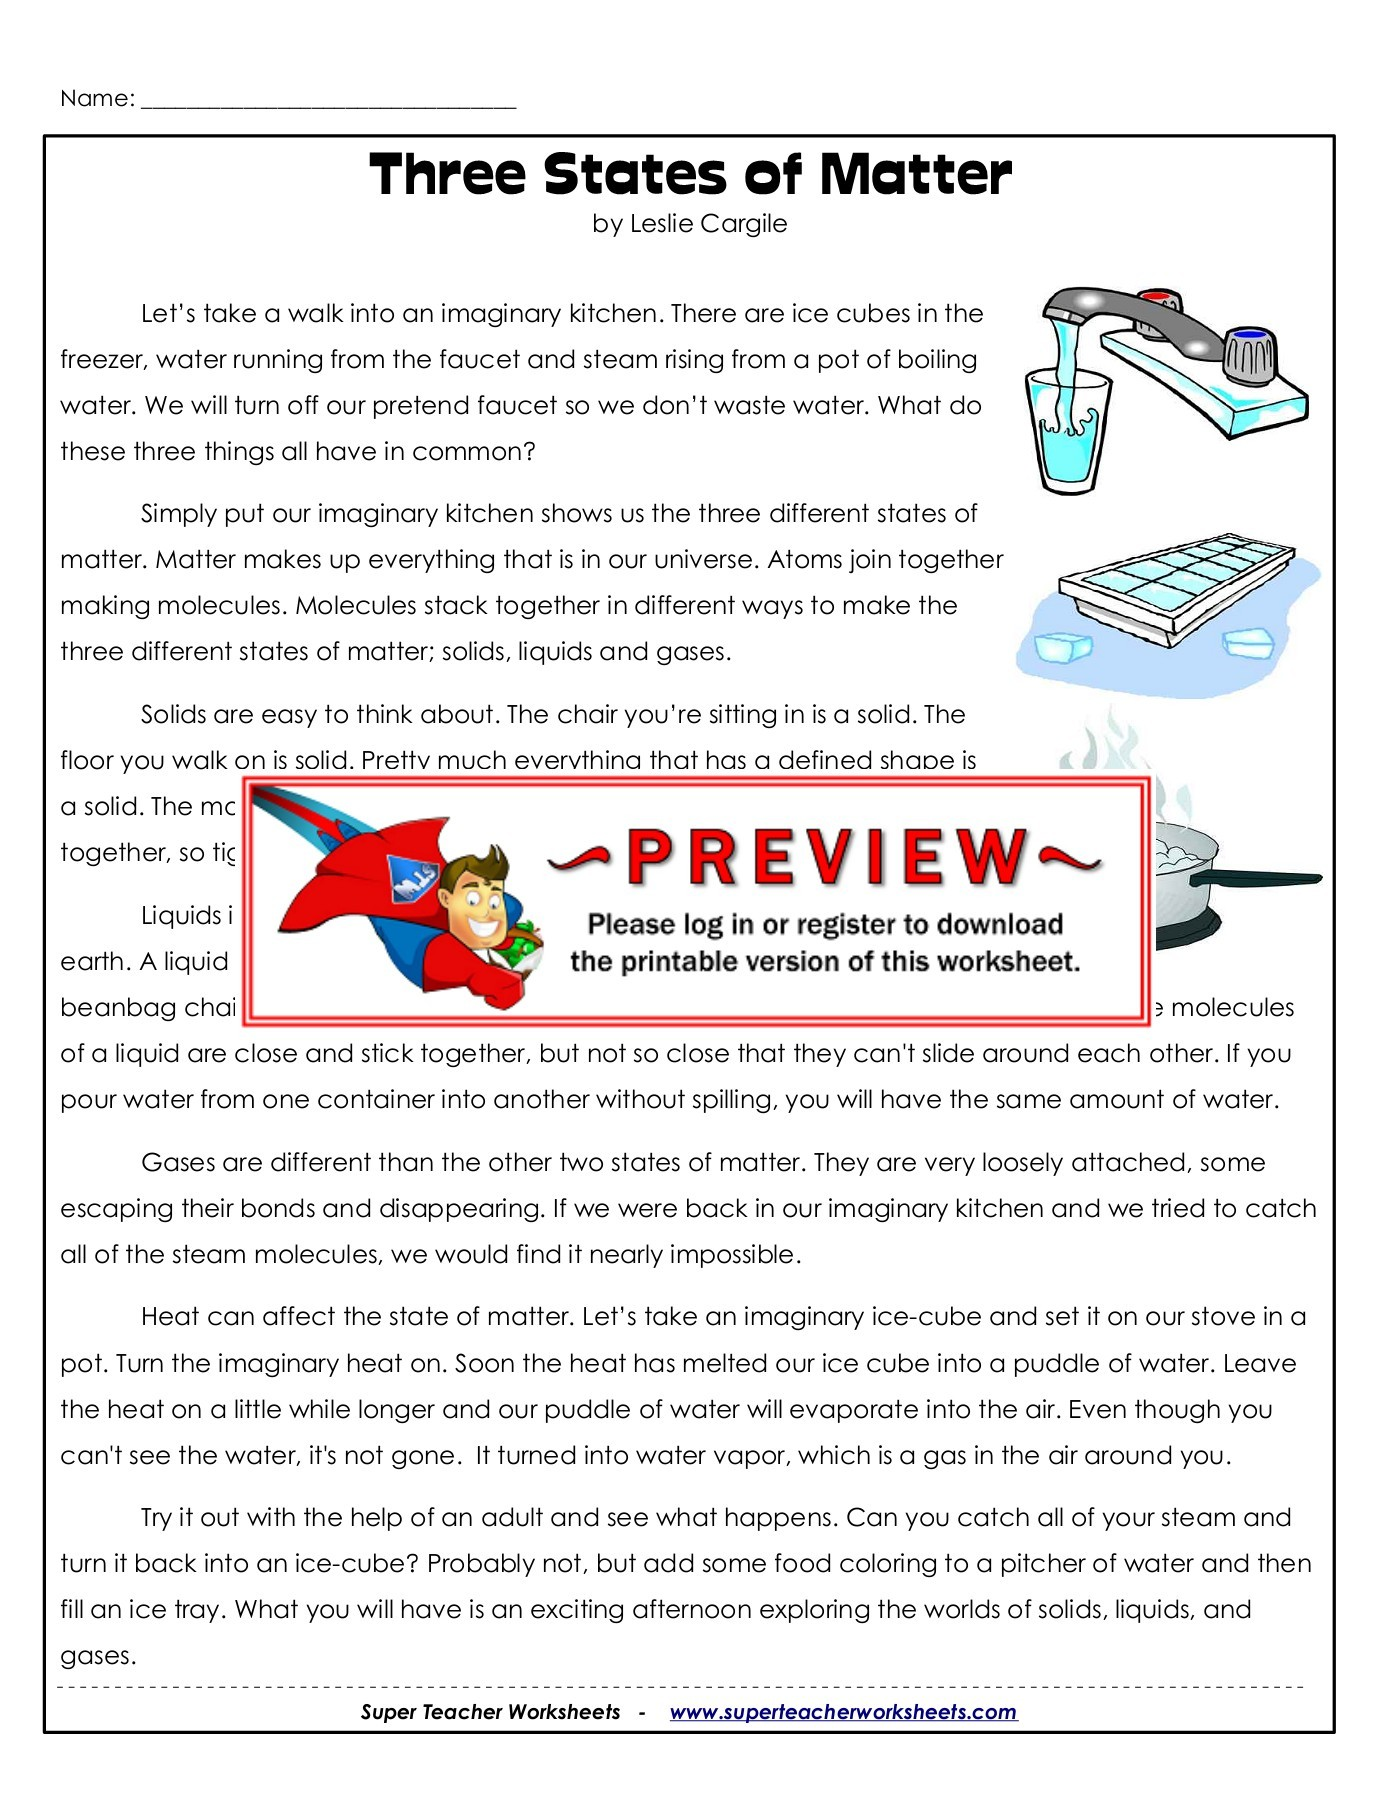 Superteacherworksheets Com